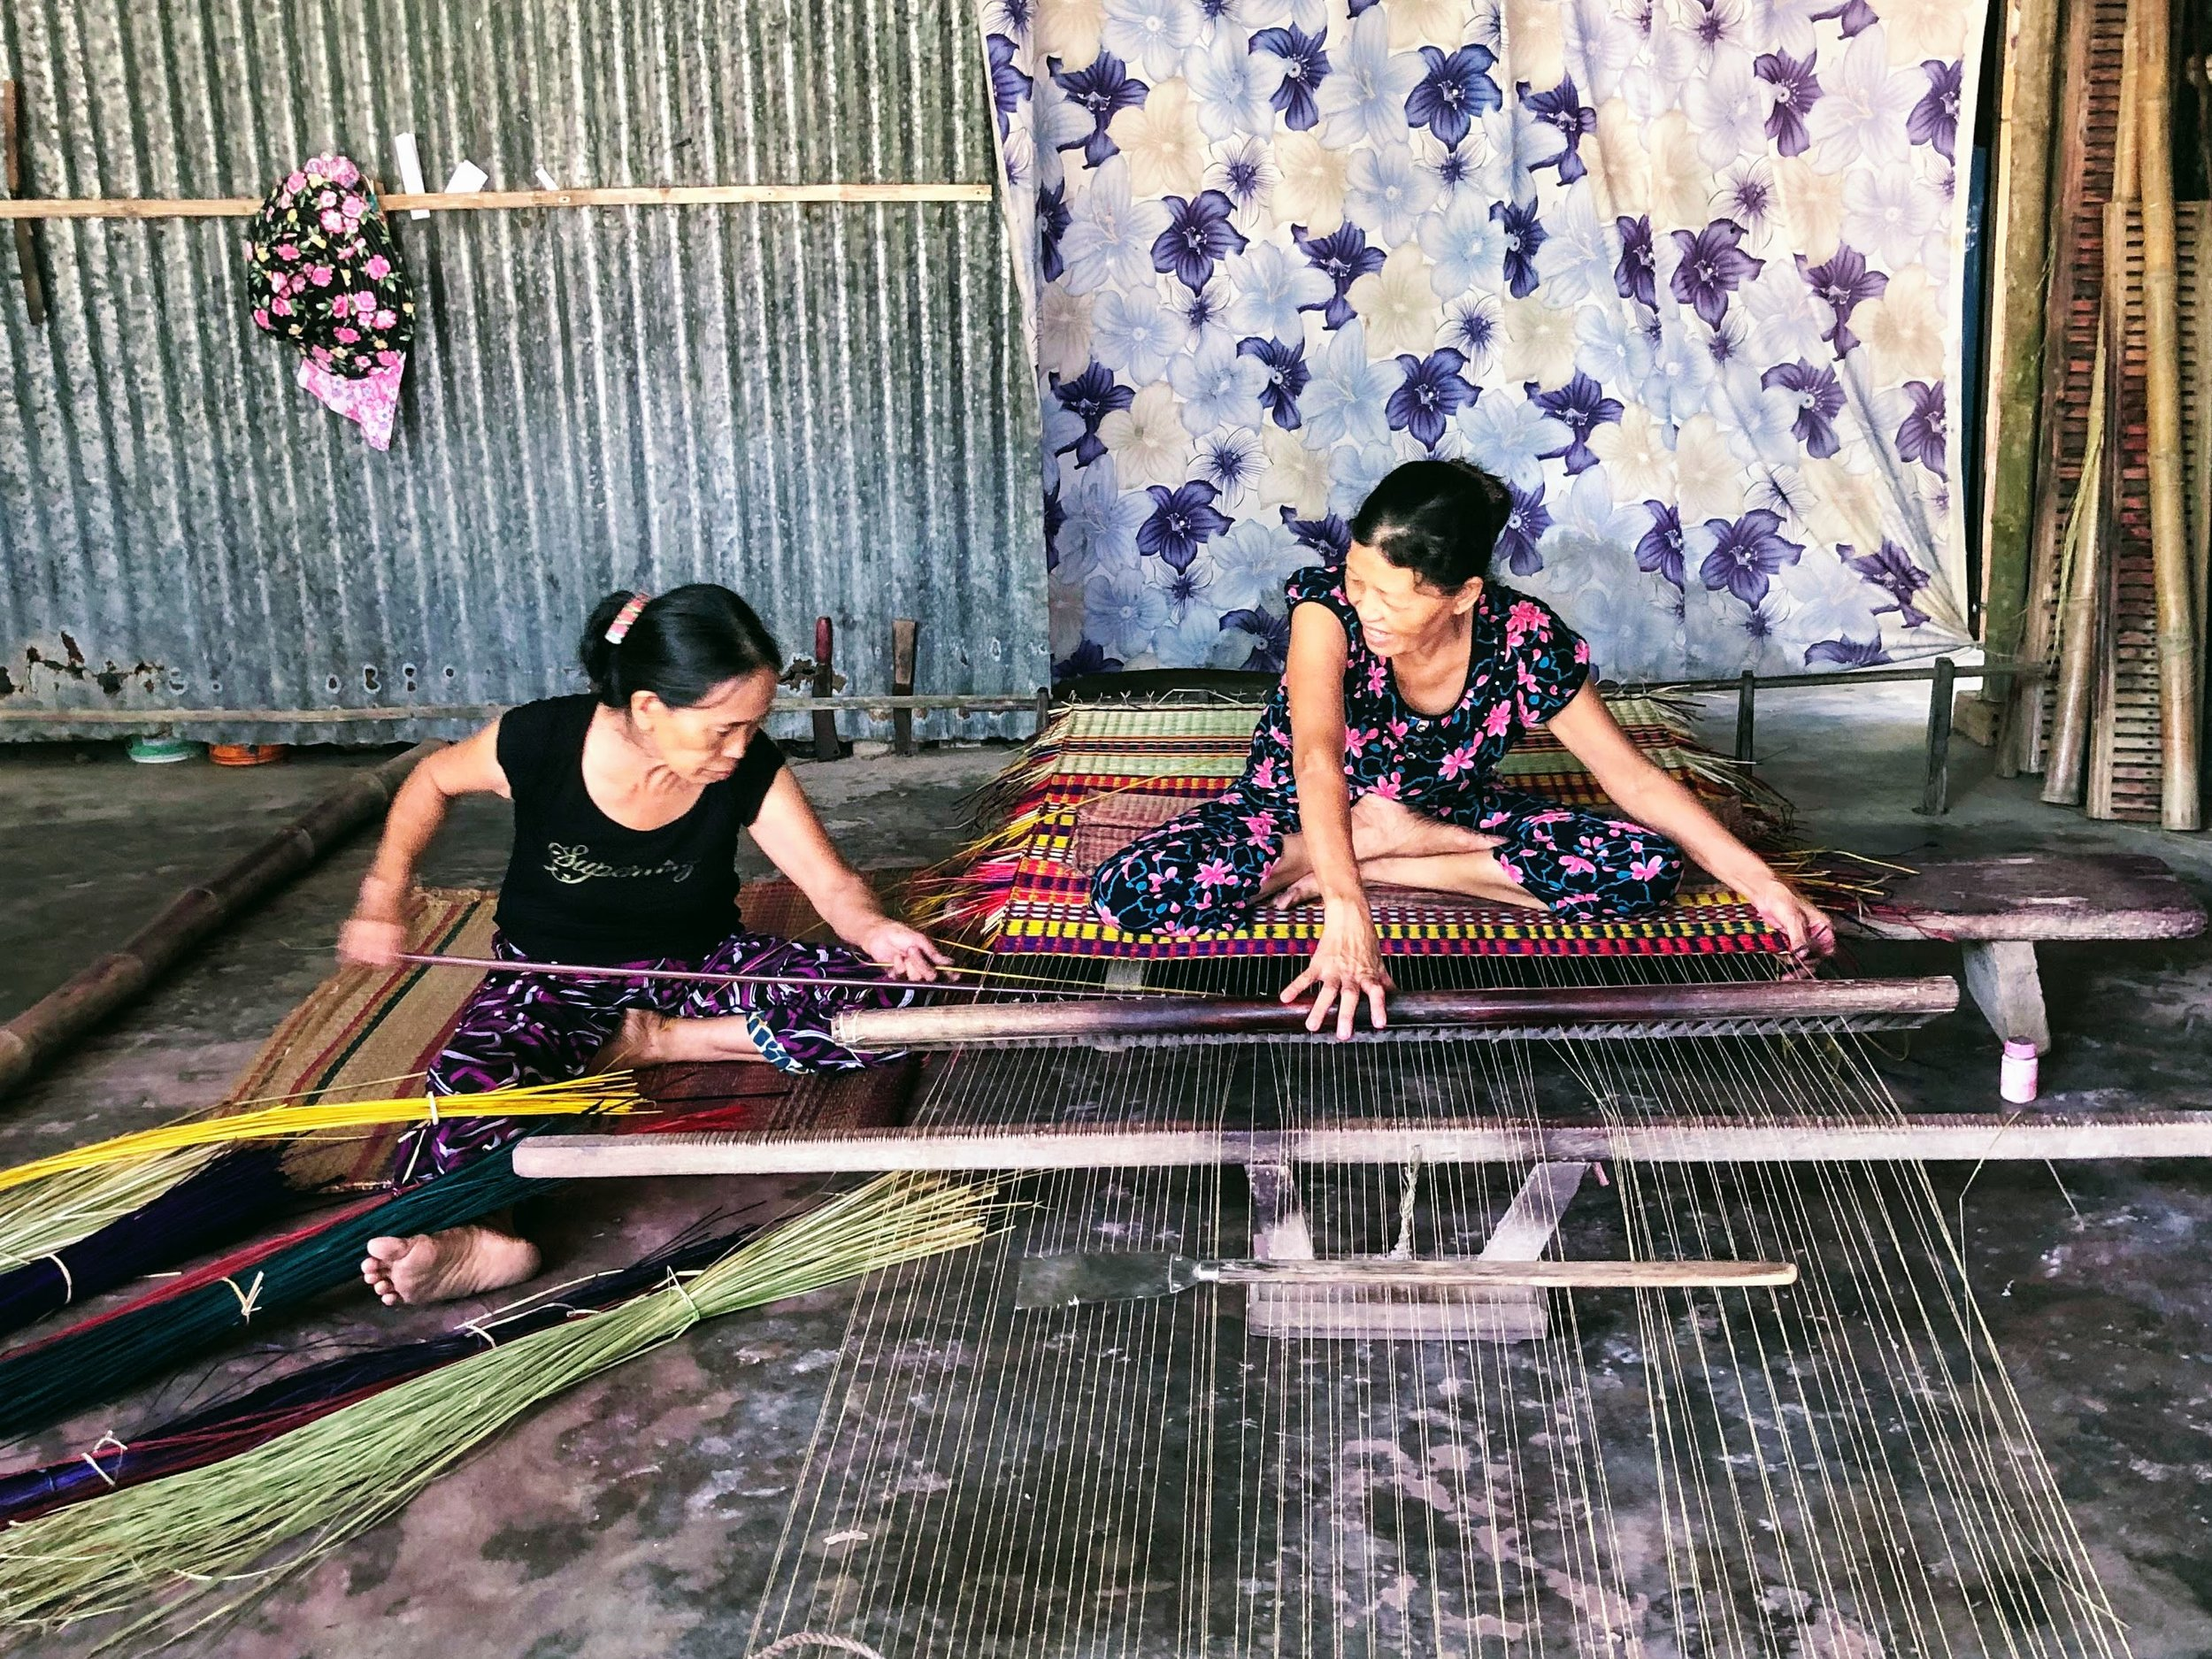 These women are weaving grass mats. It takes them 3-4 hours to complete one. They make about $1 profit on each. The woman on the left is 66. She's been weaving mats in this open-air room for the past 50 years.